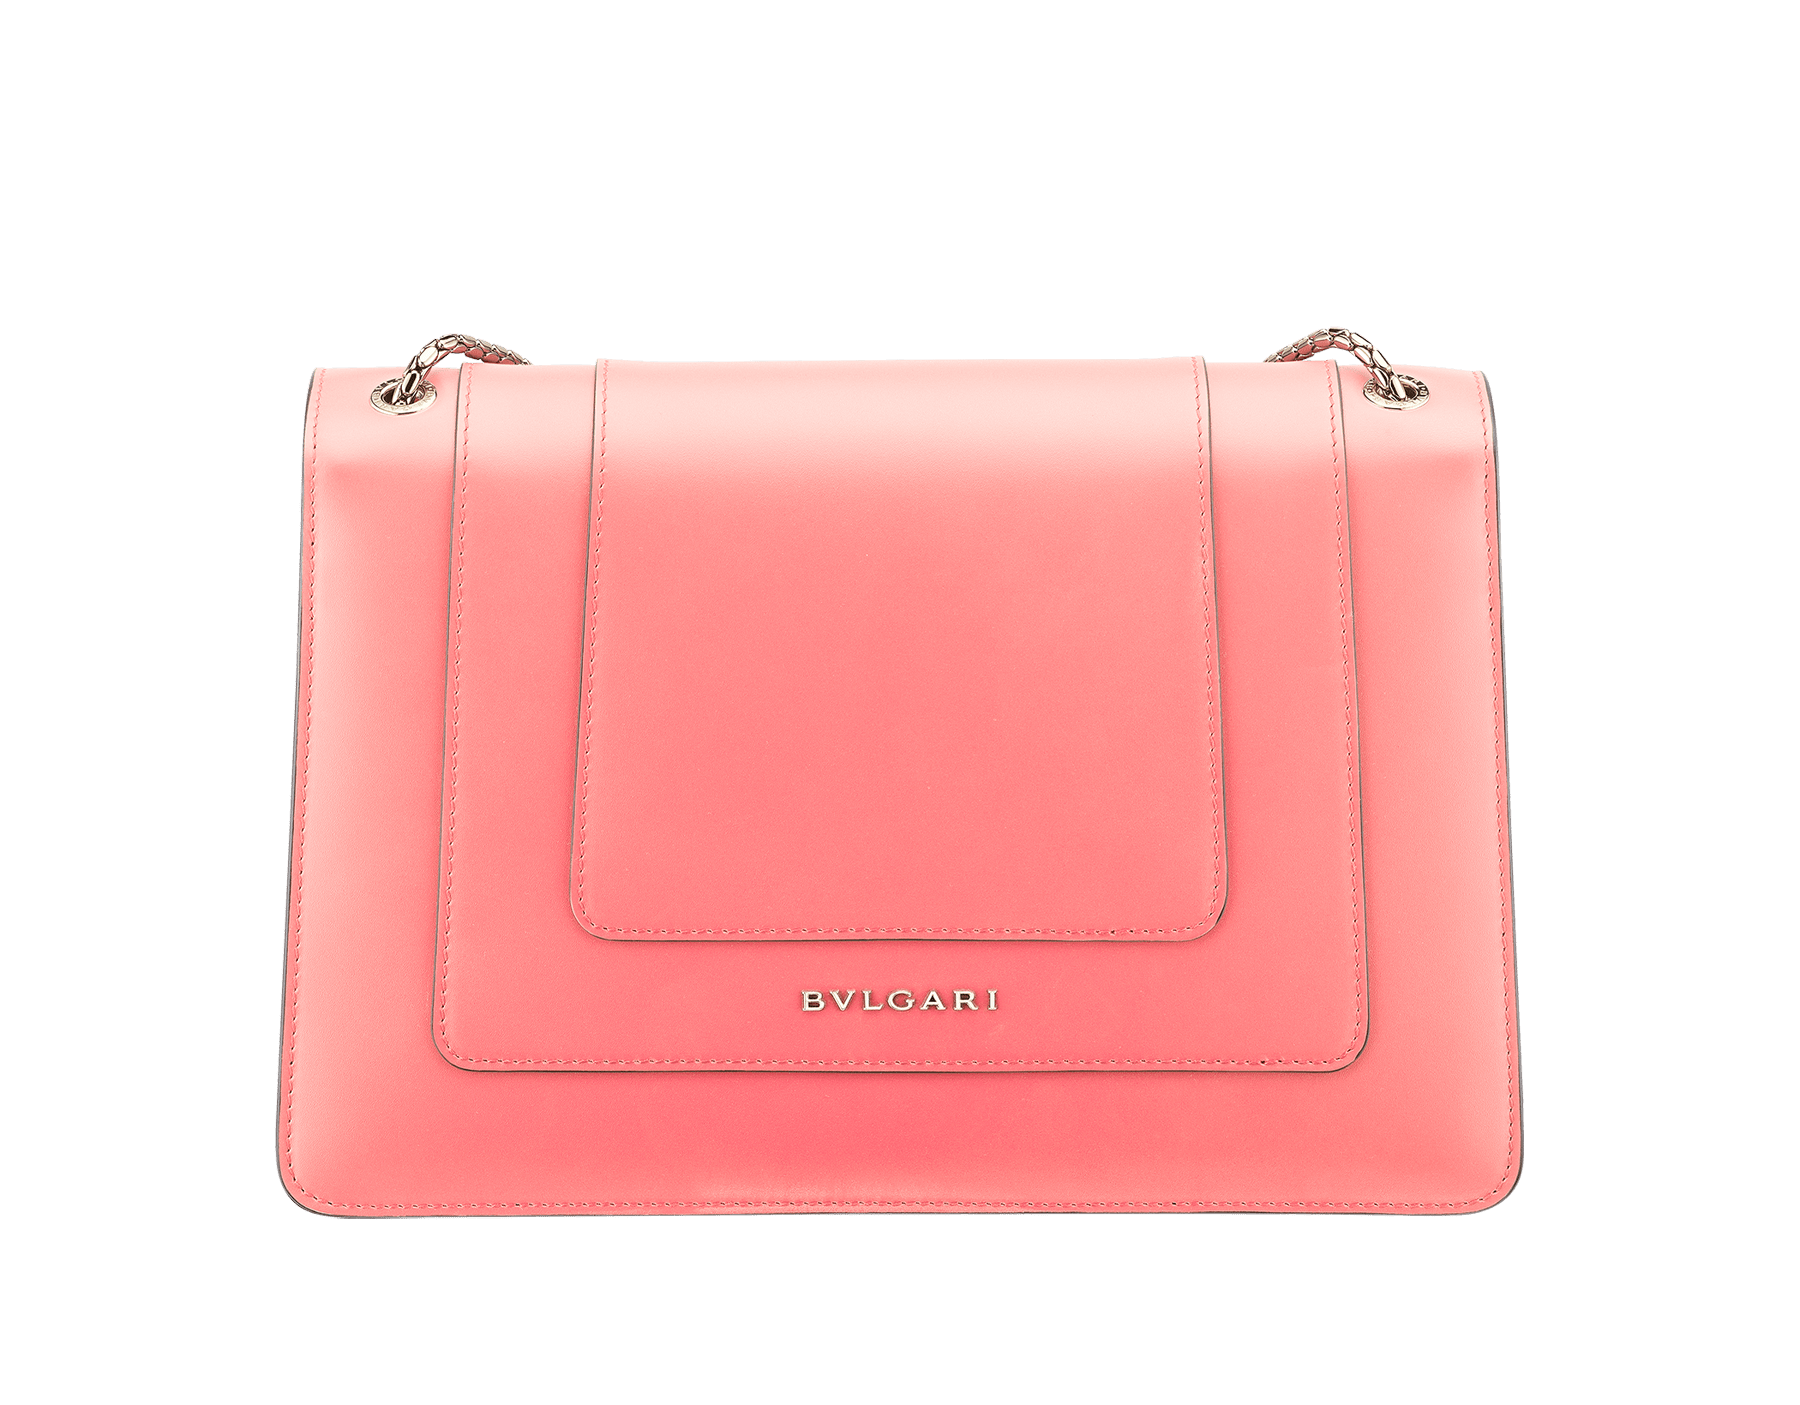 Serpenti Forever shoulder bag in silky coral calf leather. Iconic snakehead closure in light gold plated brass embellished with black and white enamel and green malachite eyes. 288704 image 3